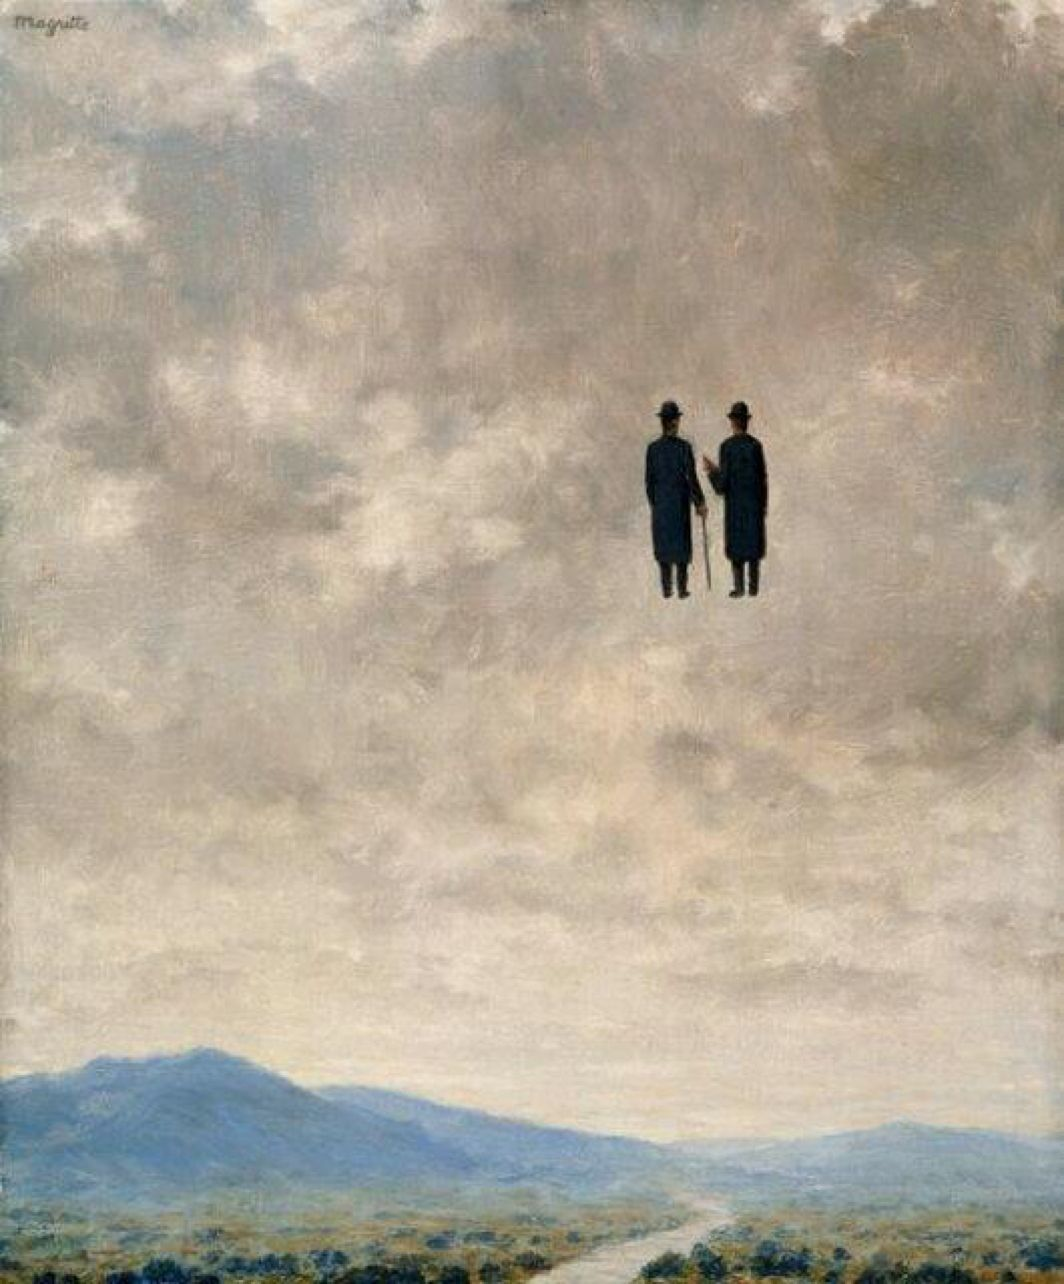 Pin By 金内敏彦 On Magritte Surreal Art Magritte Art Rene Magritte